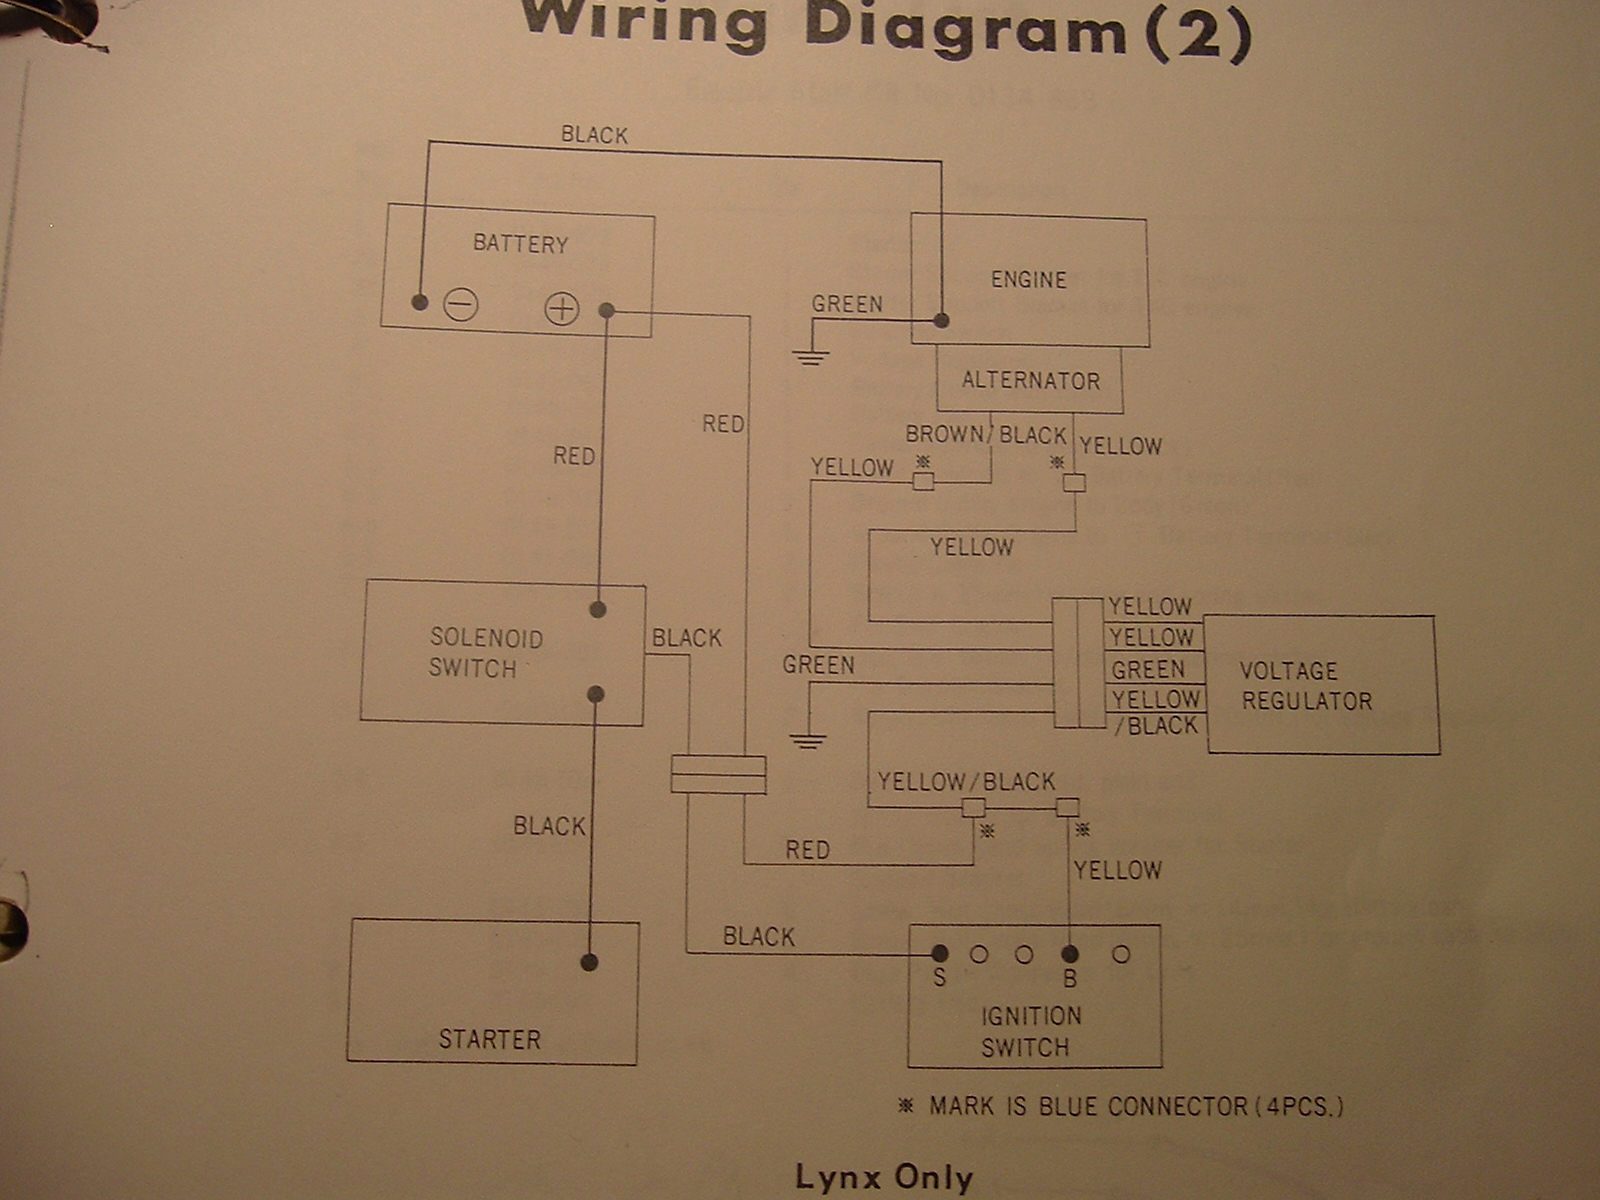 Arctic Cat Spirit 440 Wiring Diagram Will Be A Thing Yamaha 300 Rh Vintagesnow Com 2001 250 2000